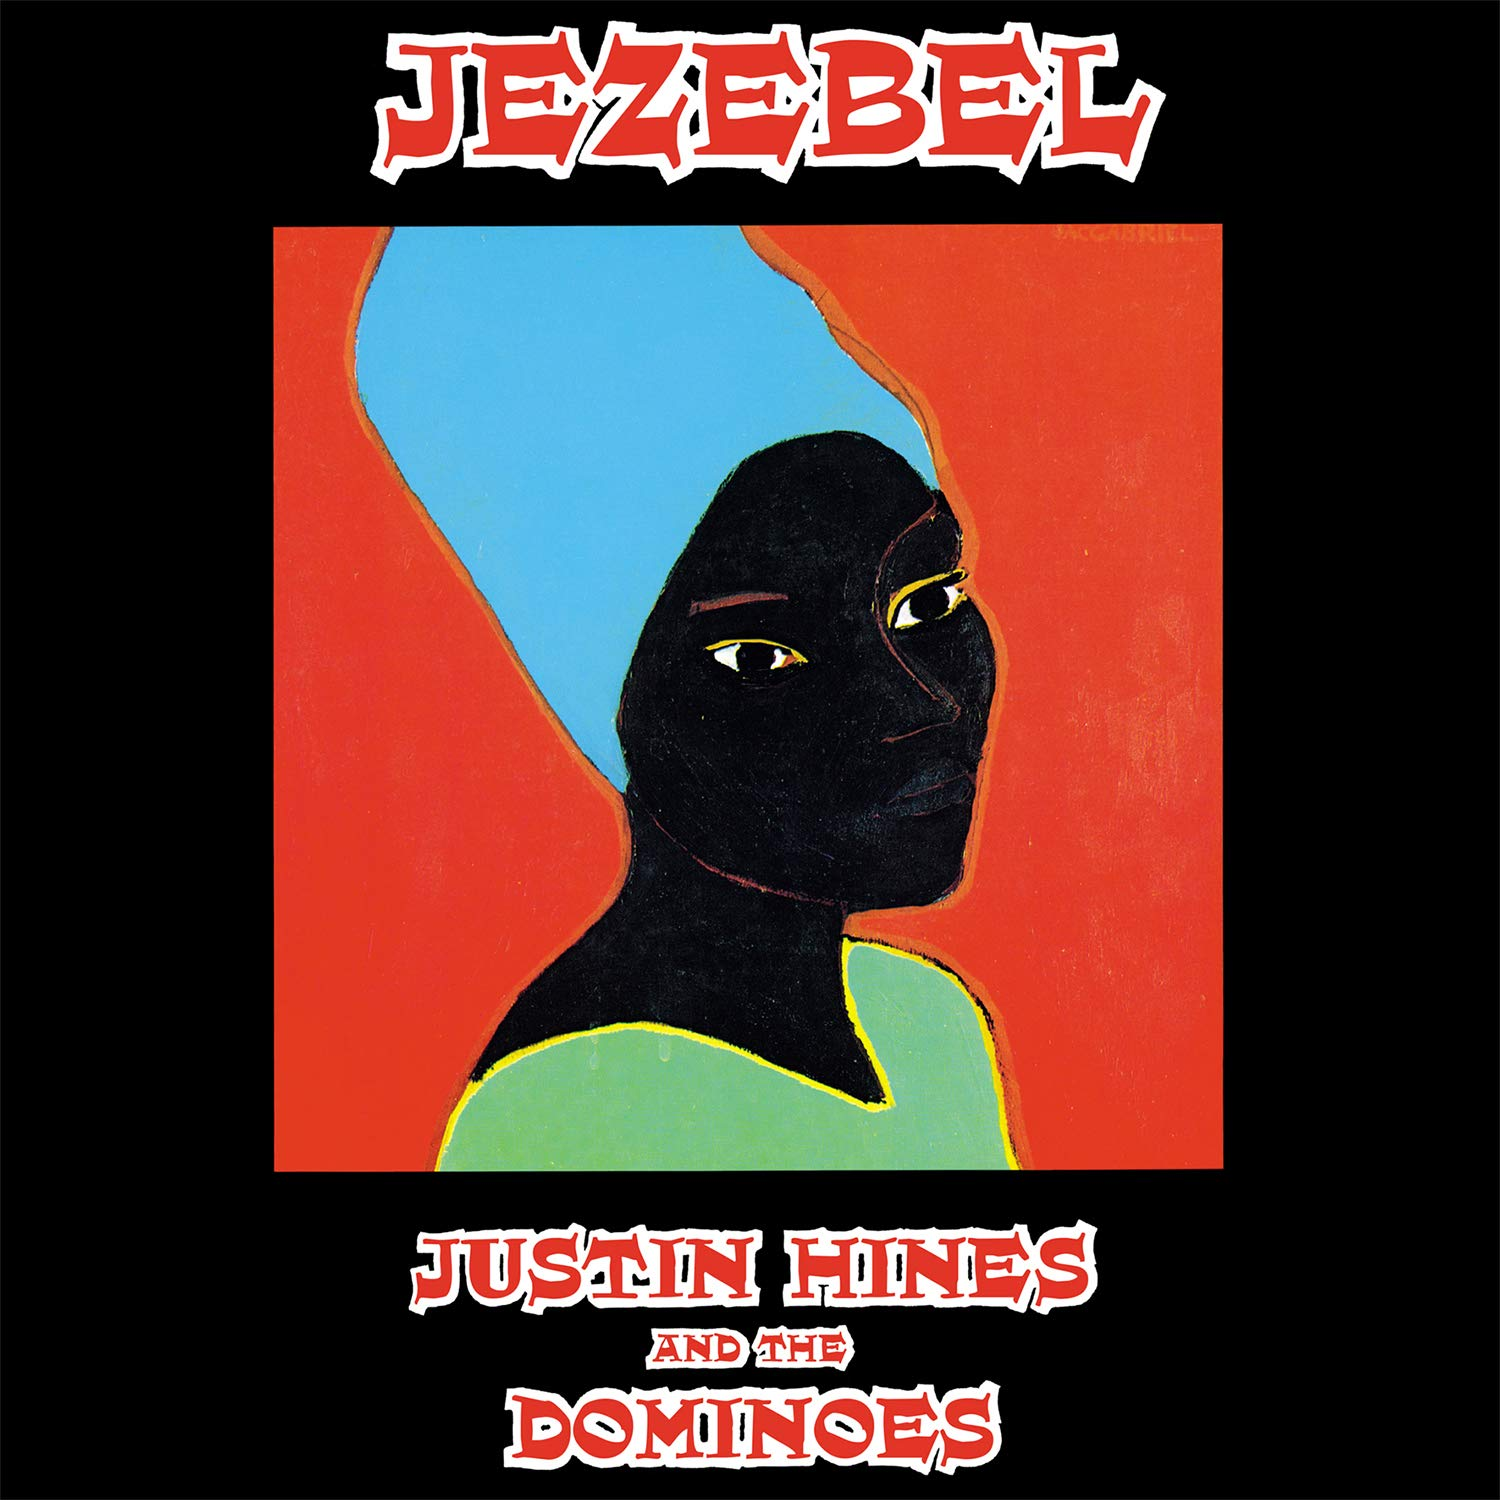 Justin Hines & The Dominoes - Jezebel [LP] (180 Gram Audiophile Vinyl, reggae series with selected reggae classics sticker on seal, import)